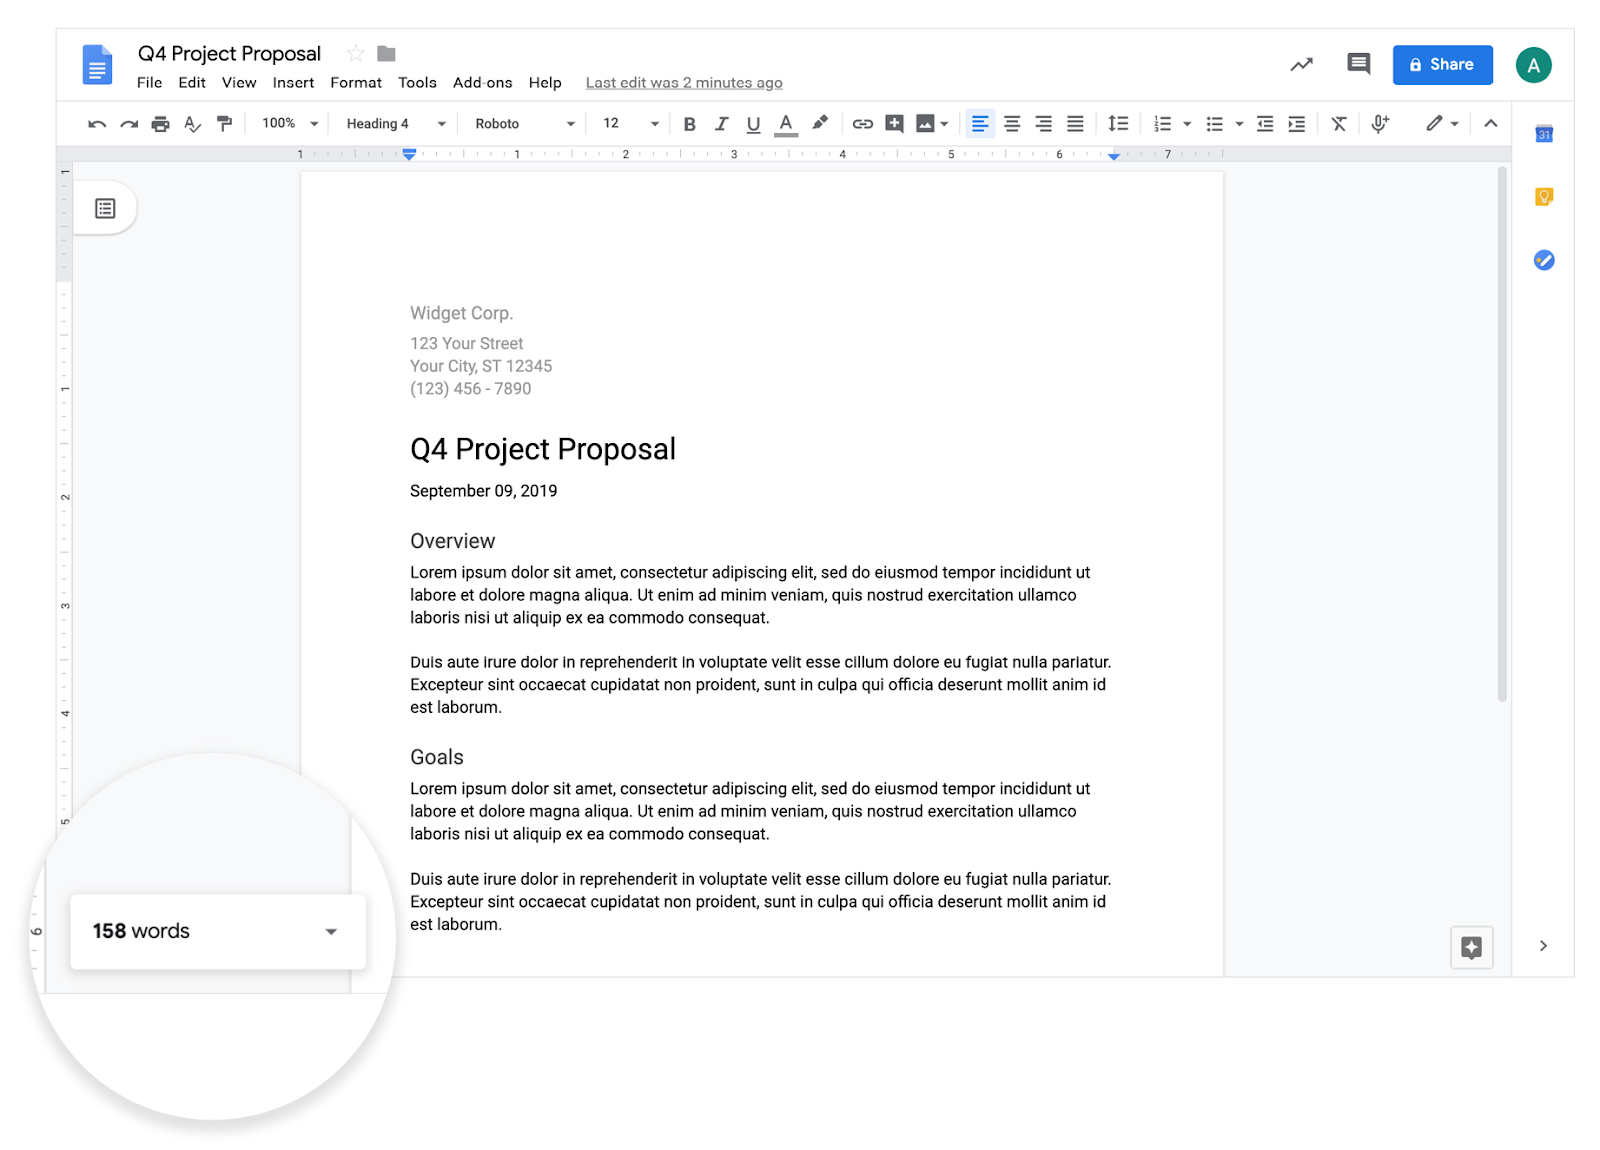 G Suite Updates Blog Display The Word Count As You Type In Google